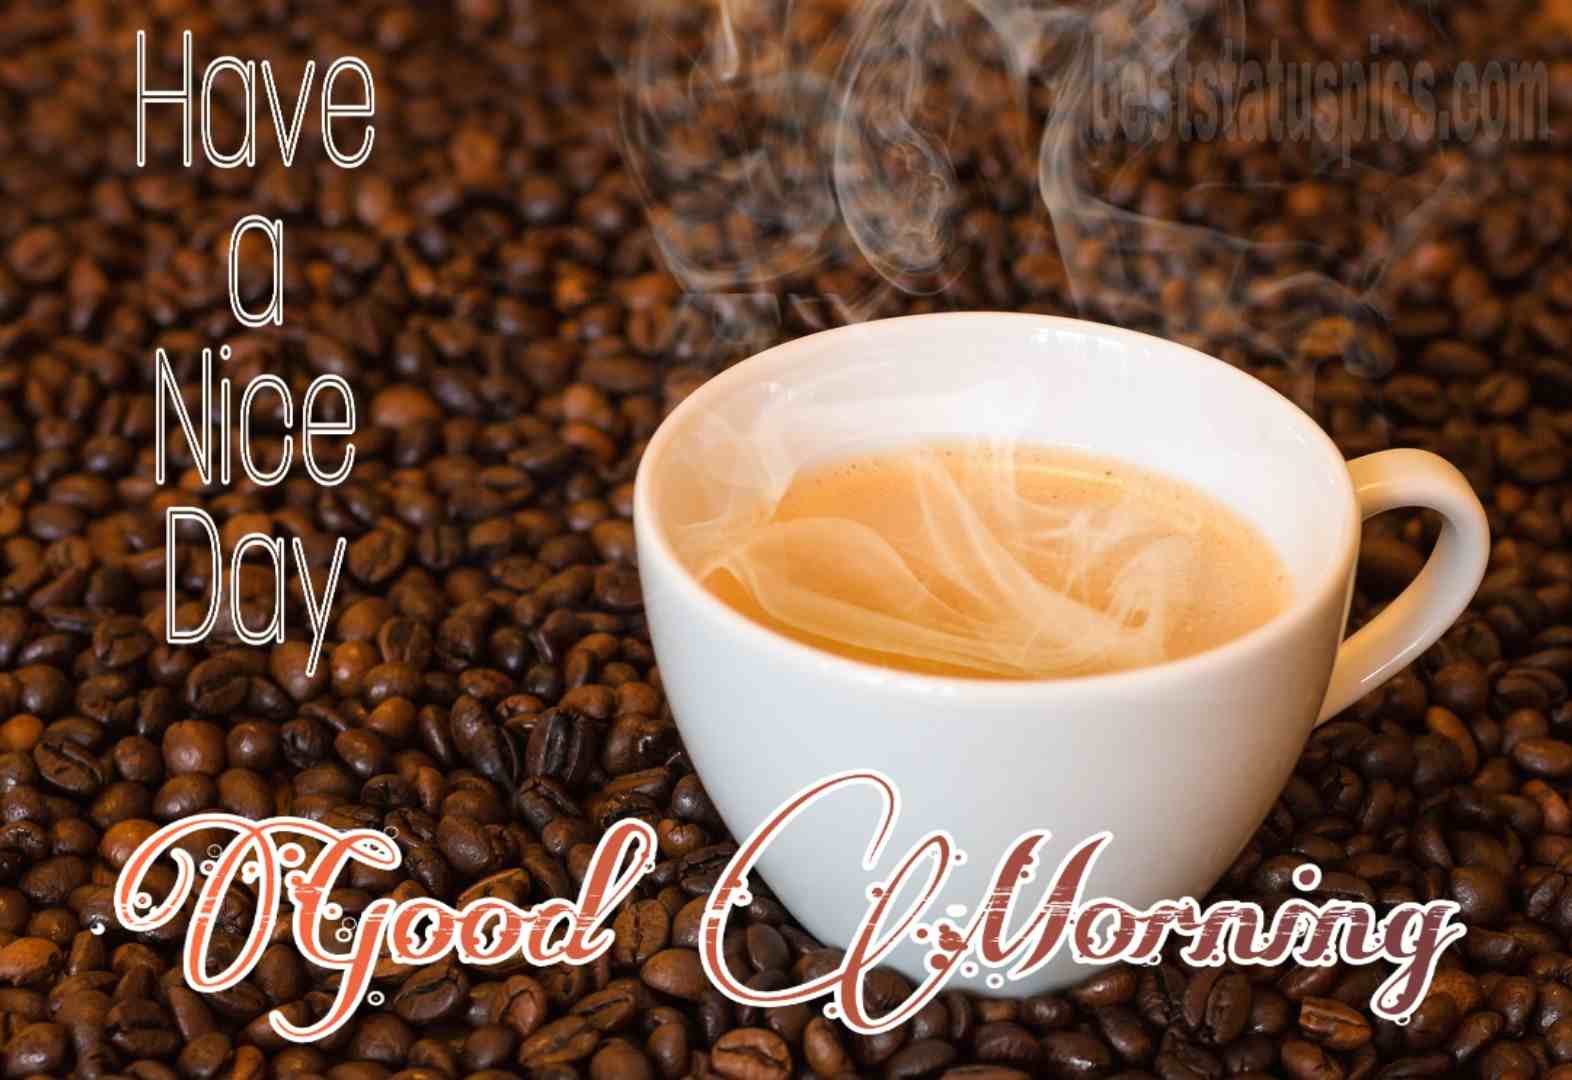 cup of coffee with good morning and have a nice day wish